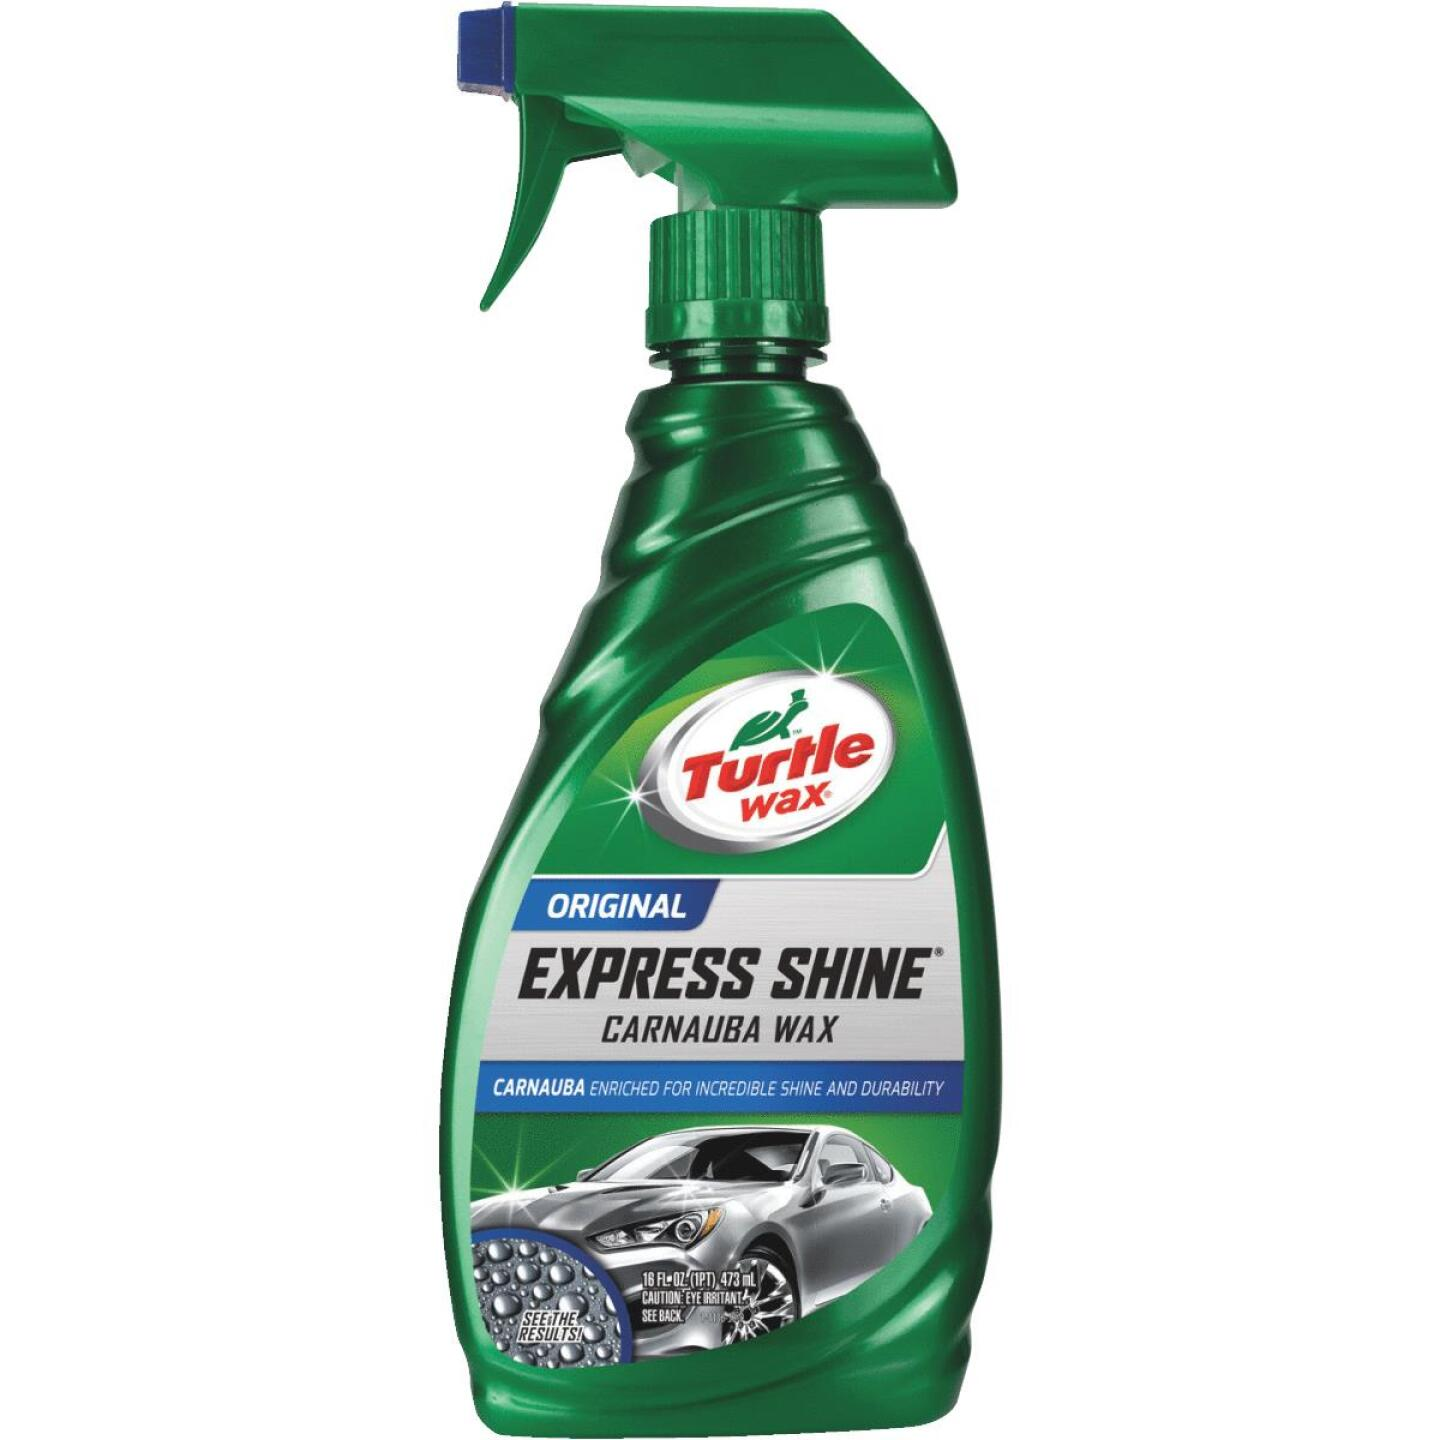 Turtle Wax Express Shine 16 Oz. Trigger Spray Spray Car Wax Image 1